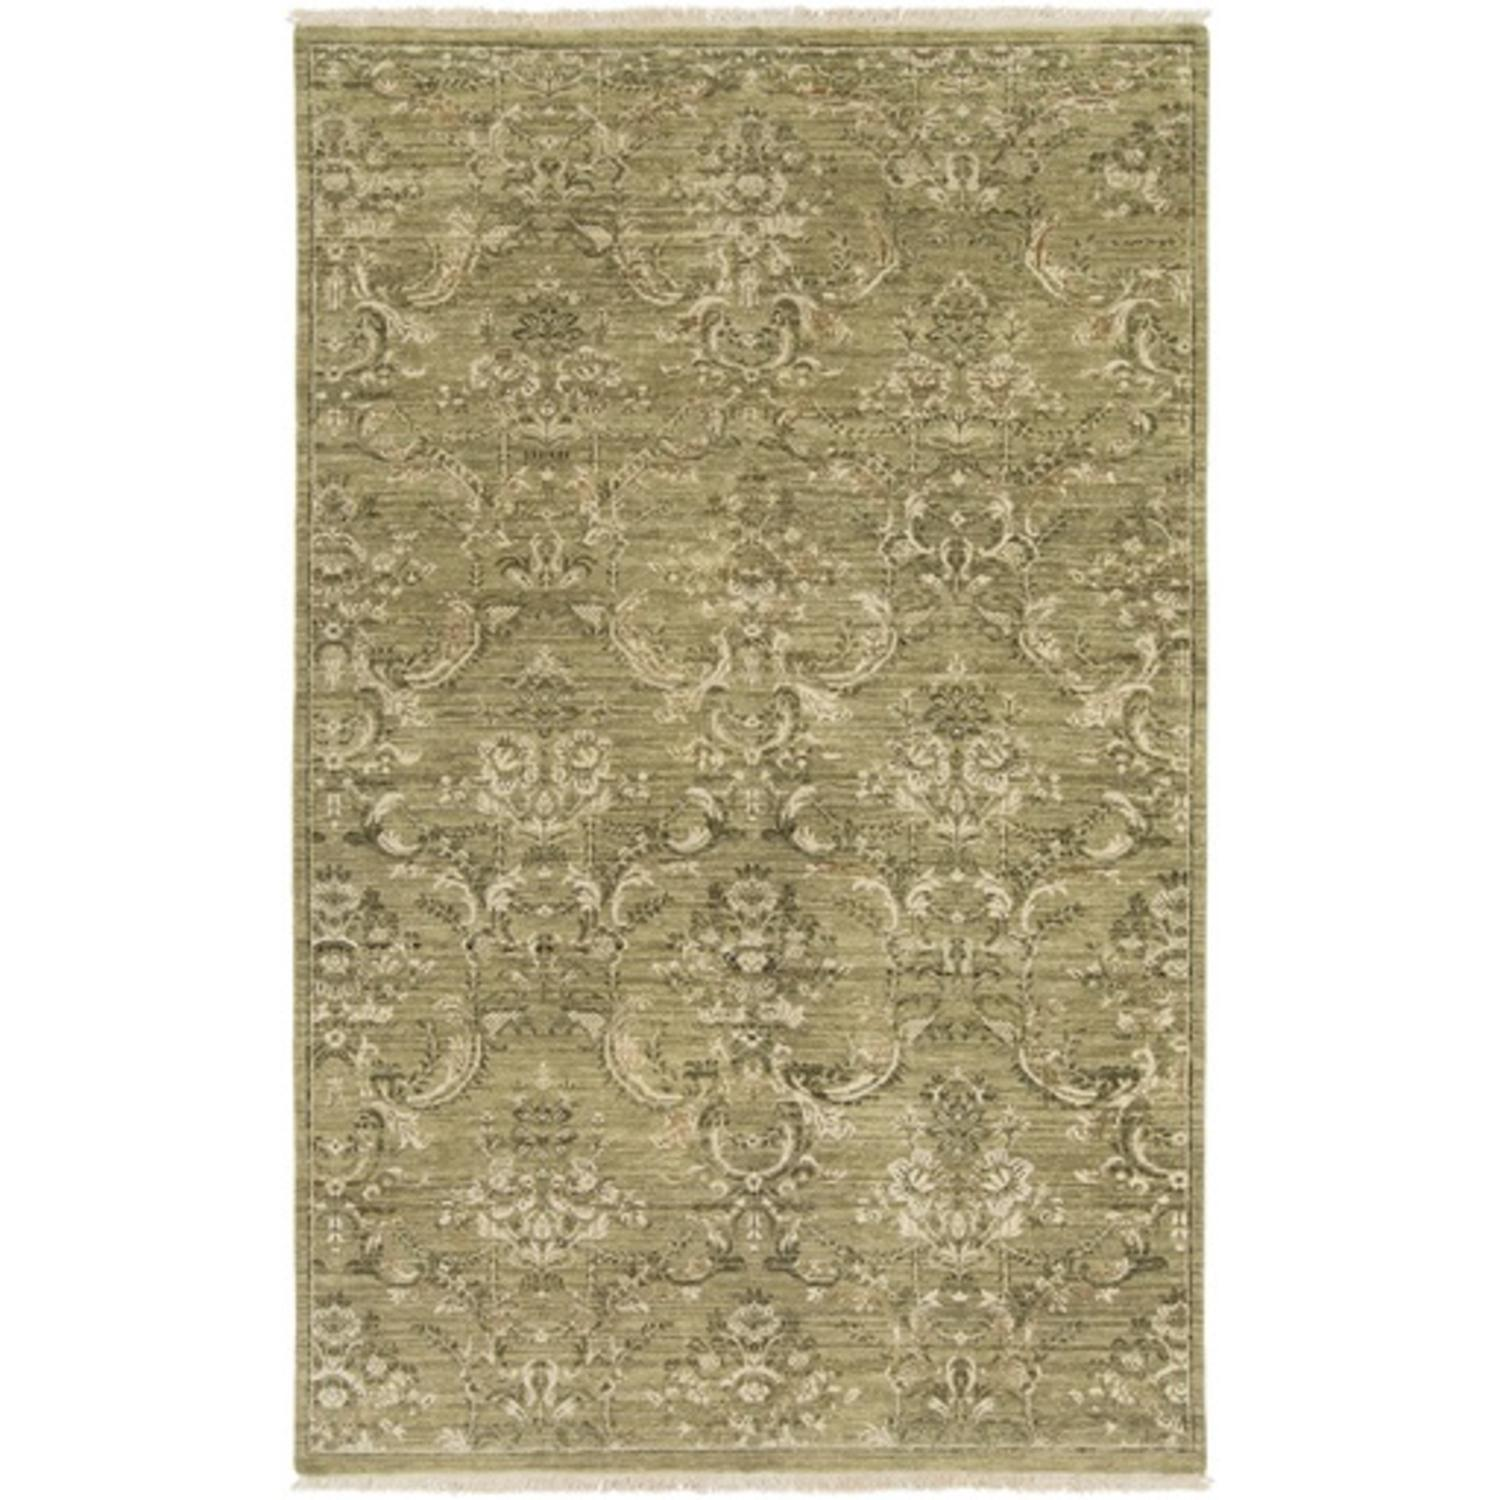 9' x 13' Family Heirloom Olive Green and Sandy Beige Wool Area Throw Rug